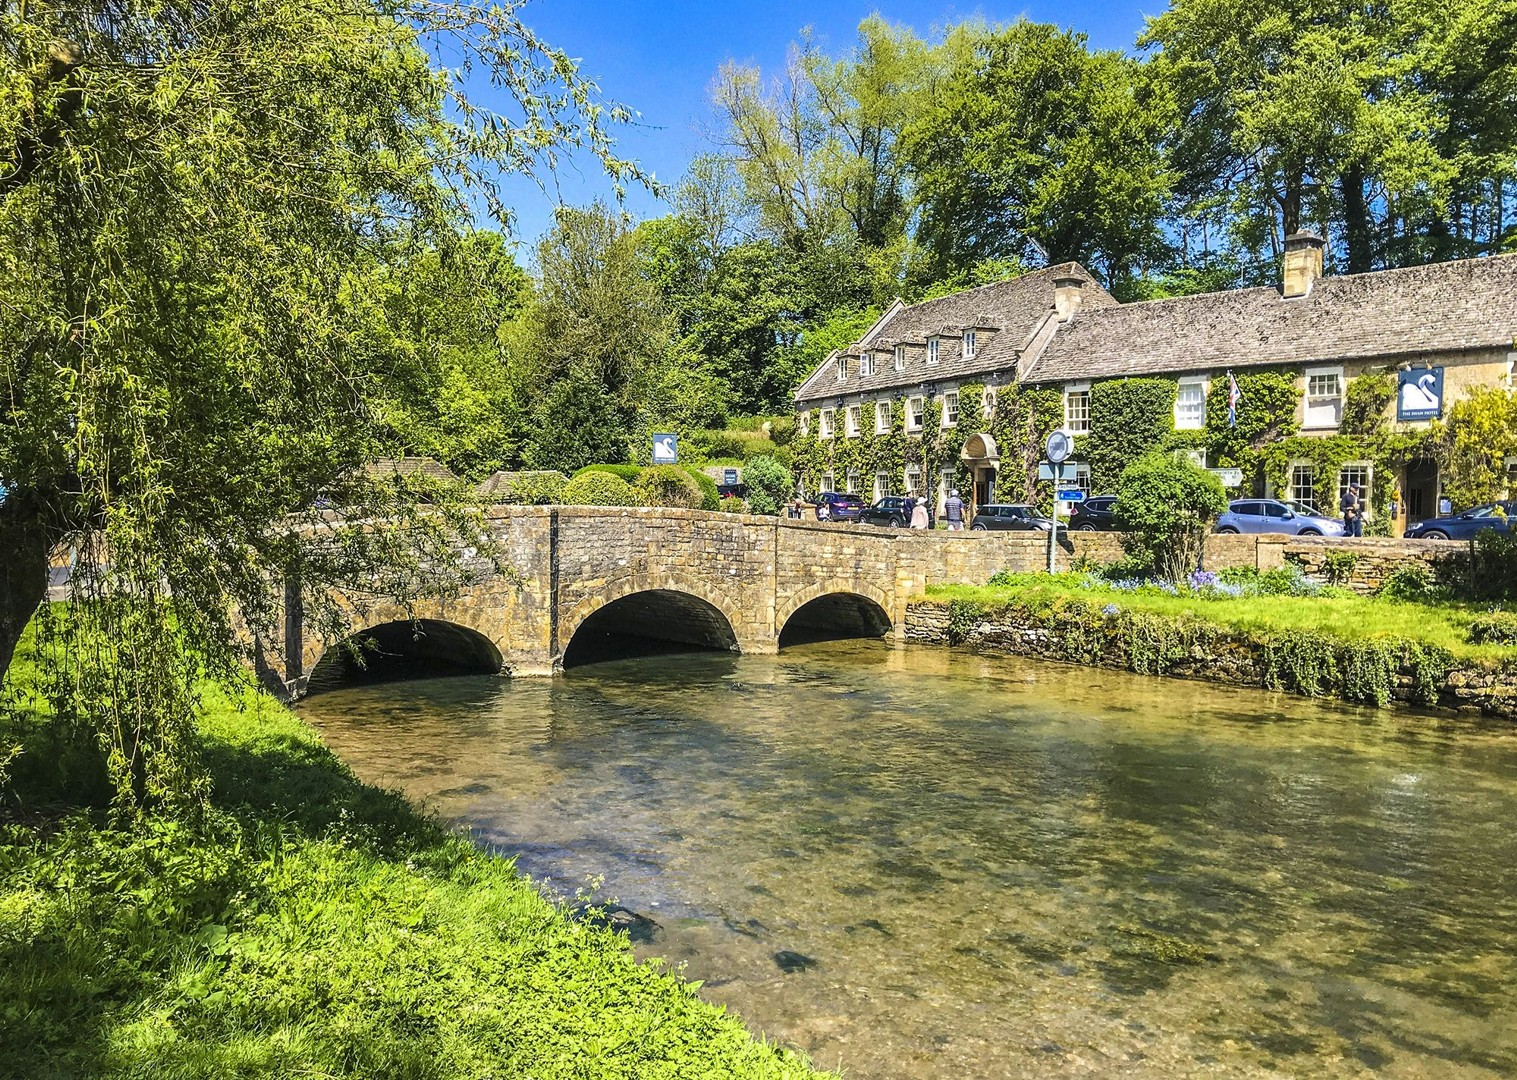 local-pubs-accommodations-cycling-leisure-countryside-quiet-roads-guided.jpg - UK - Cotswolds - Bourton-on-the-Water - Guided Leisure Cycling Holiday - Leisure Cycling